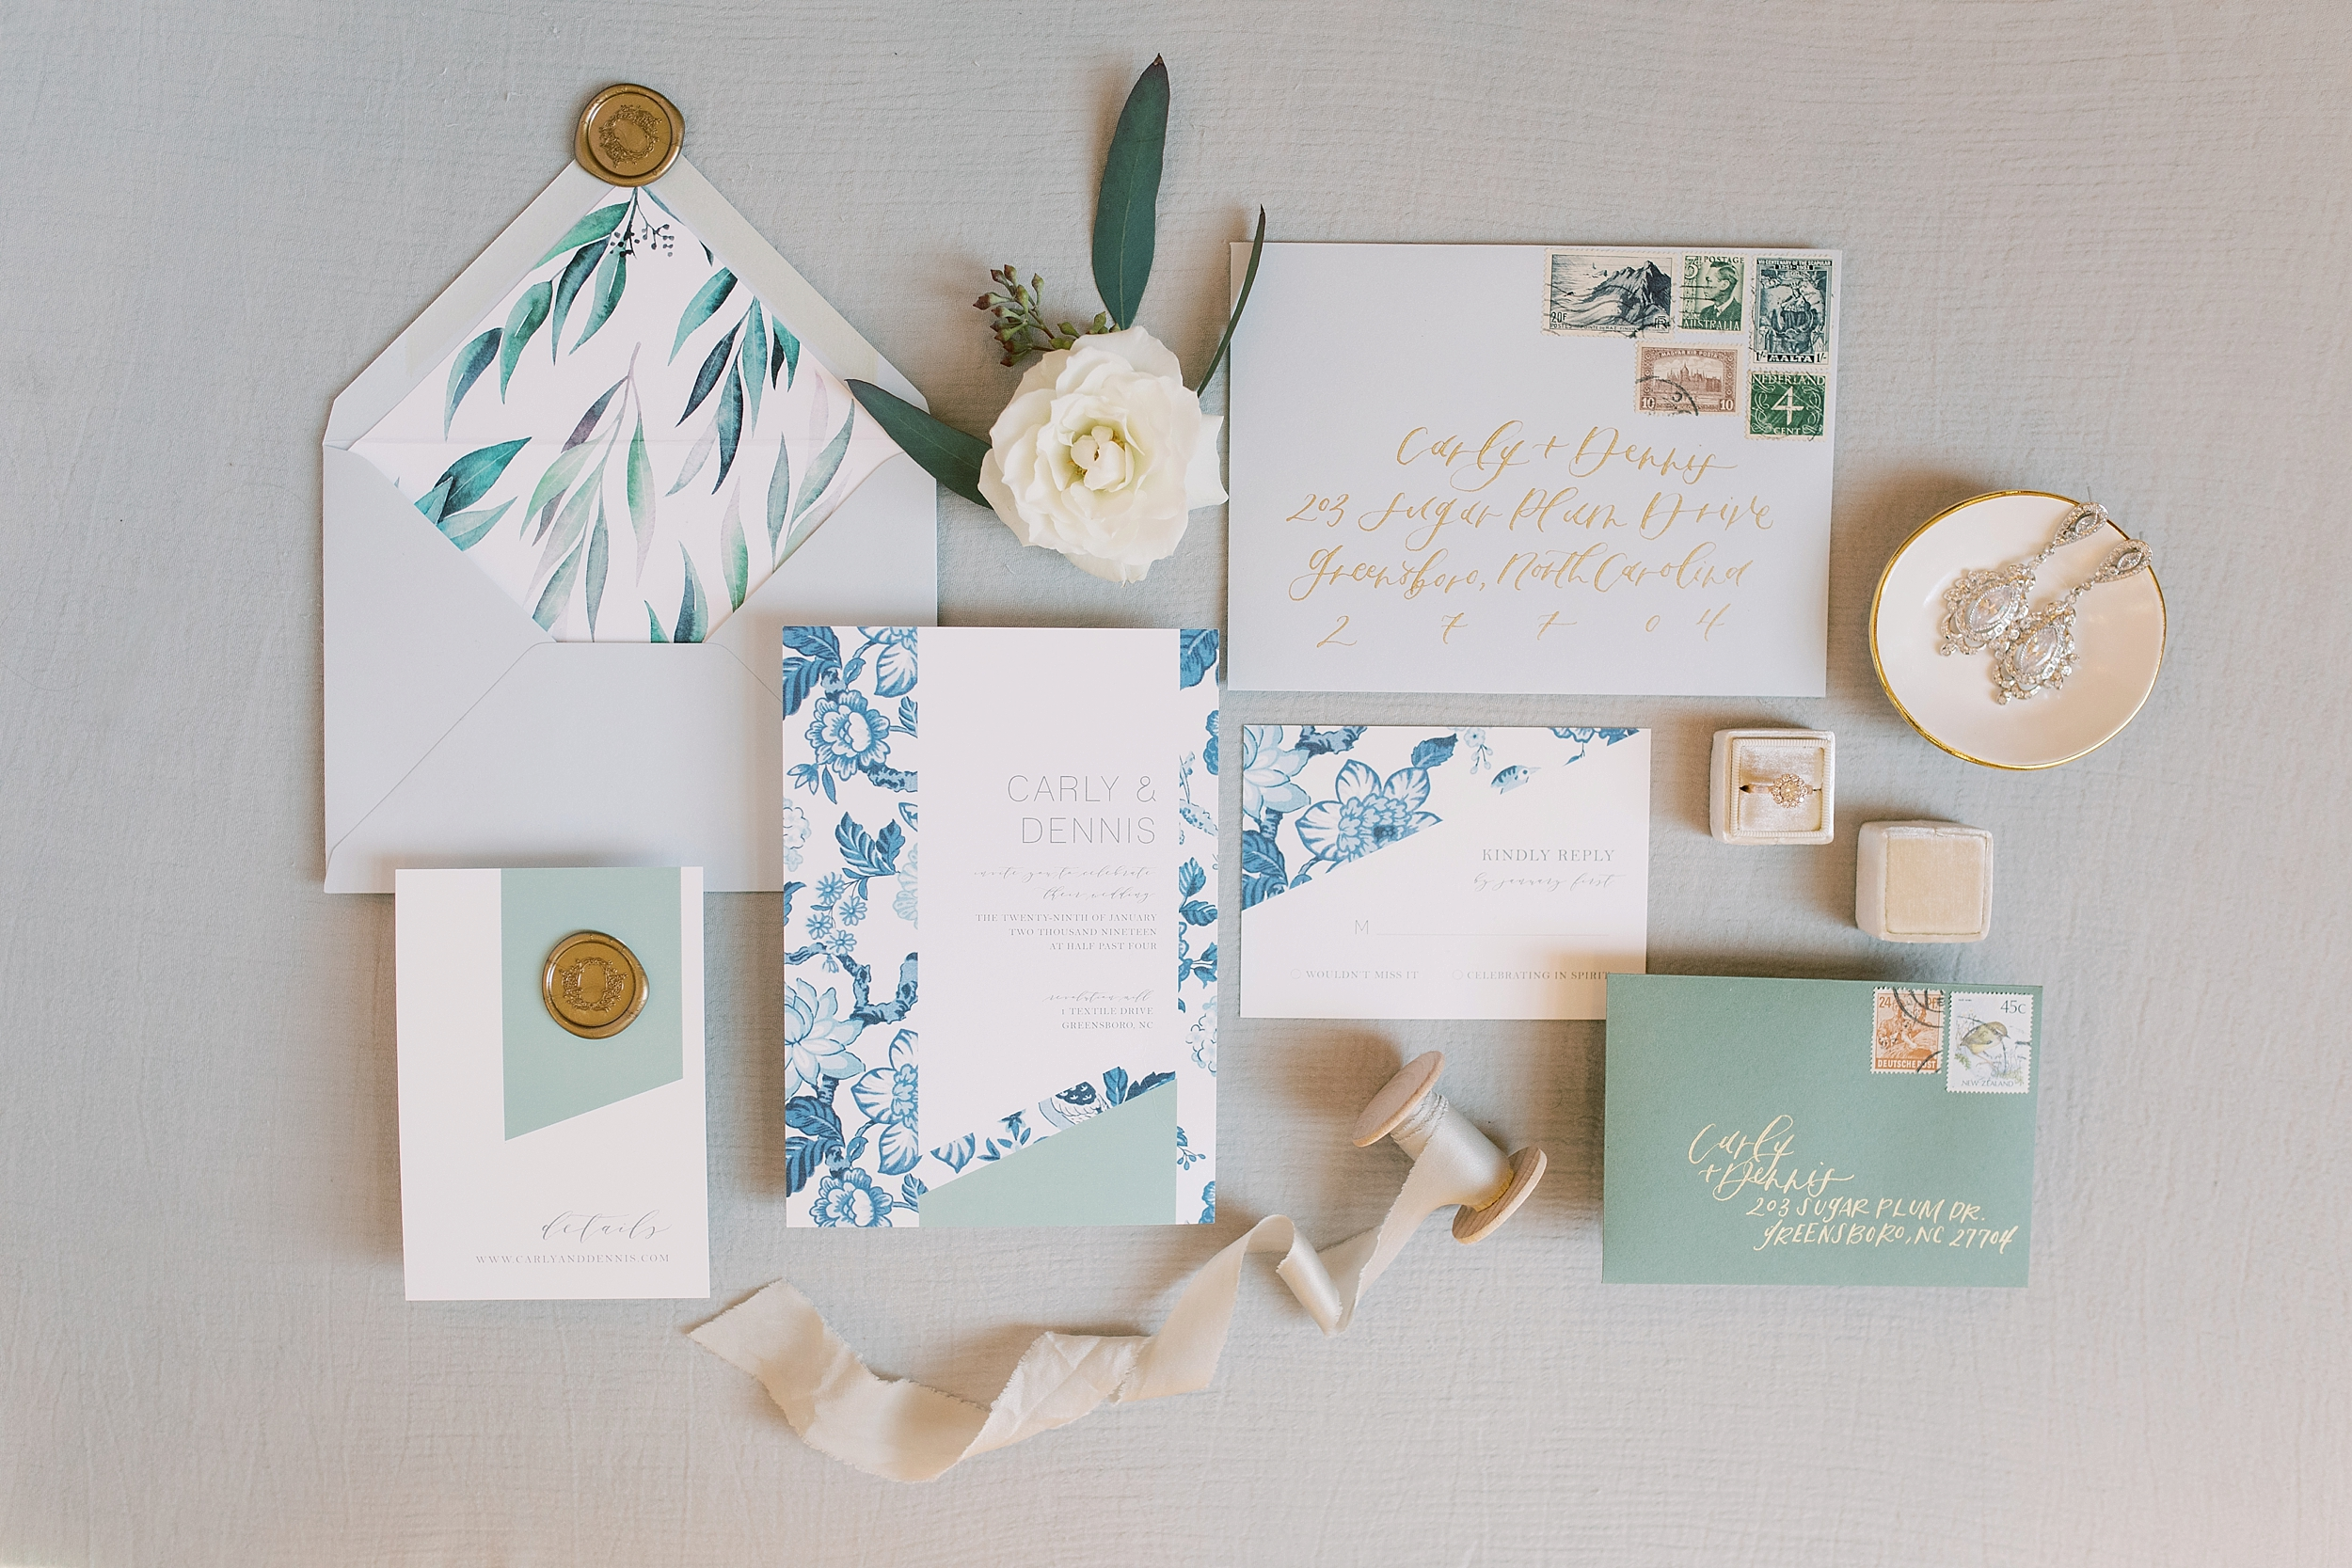 Photo by Alayna Kaye Photography, Paper details by Design by Laney